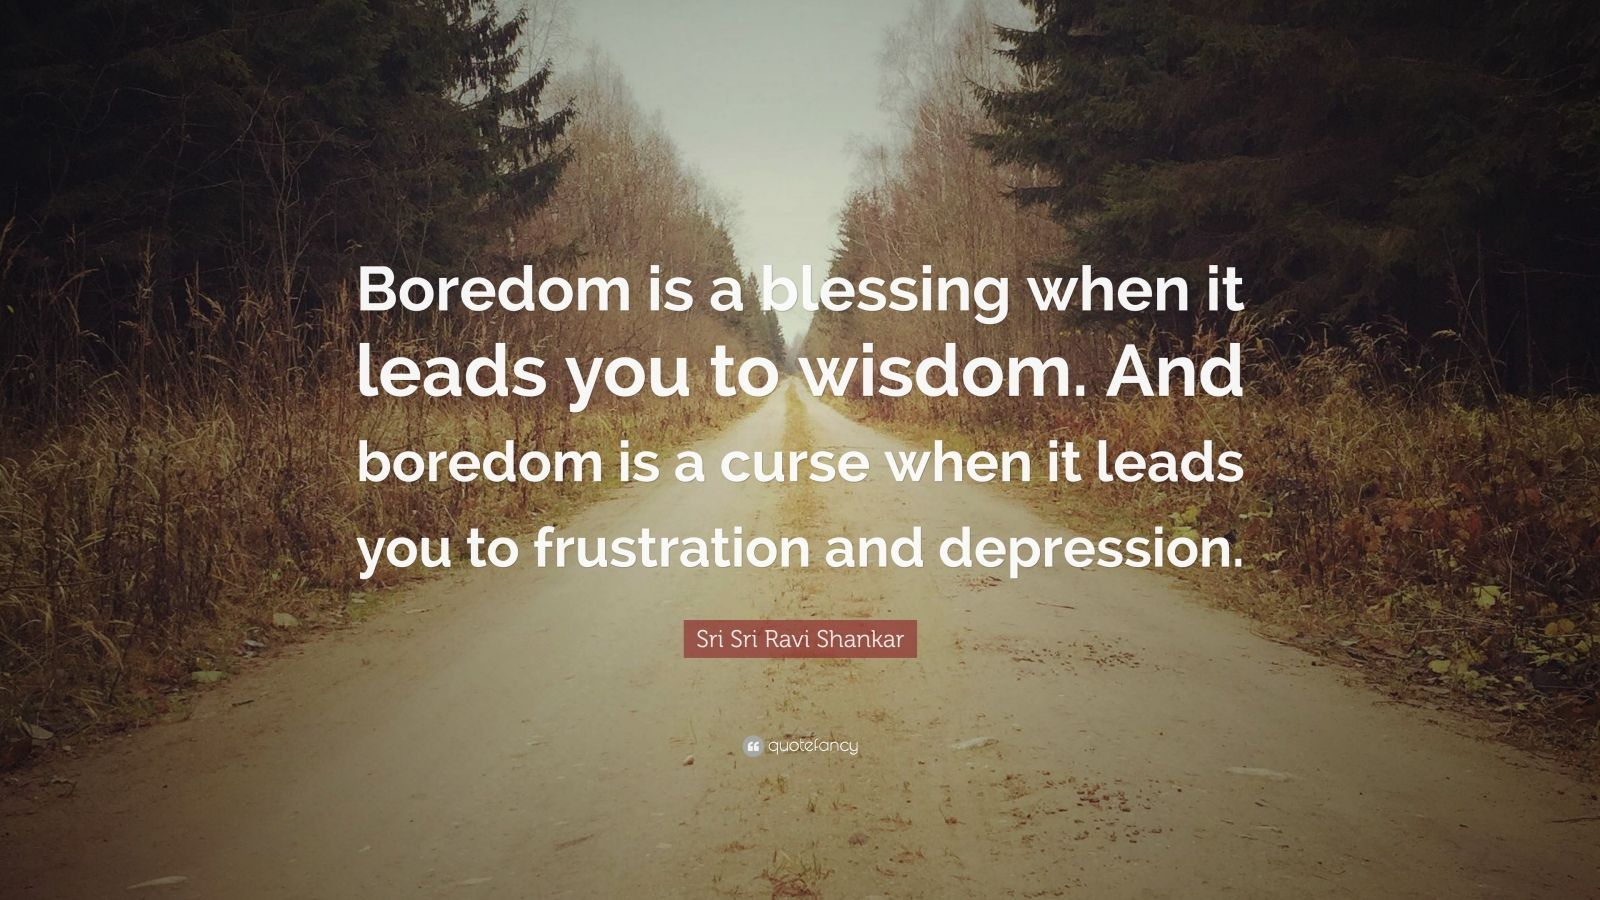 """Sri Sri Ravi Shankar Quote: """"Boredom is a blessing when it leads you to wisdom. And boredom is a curse when it leads you to frustration and depression."""""""